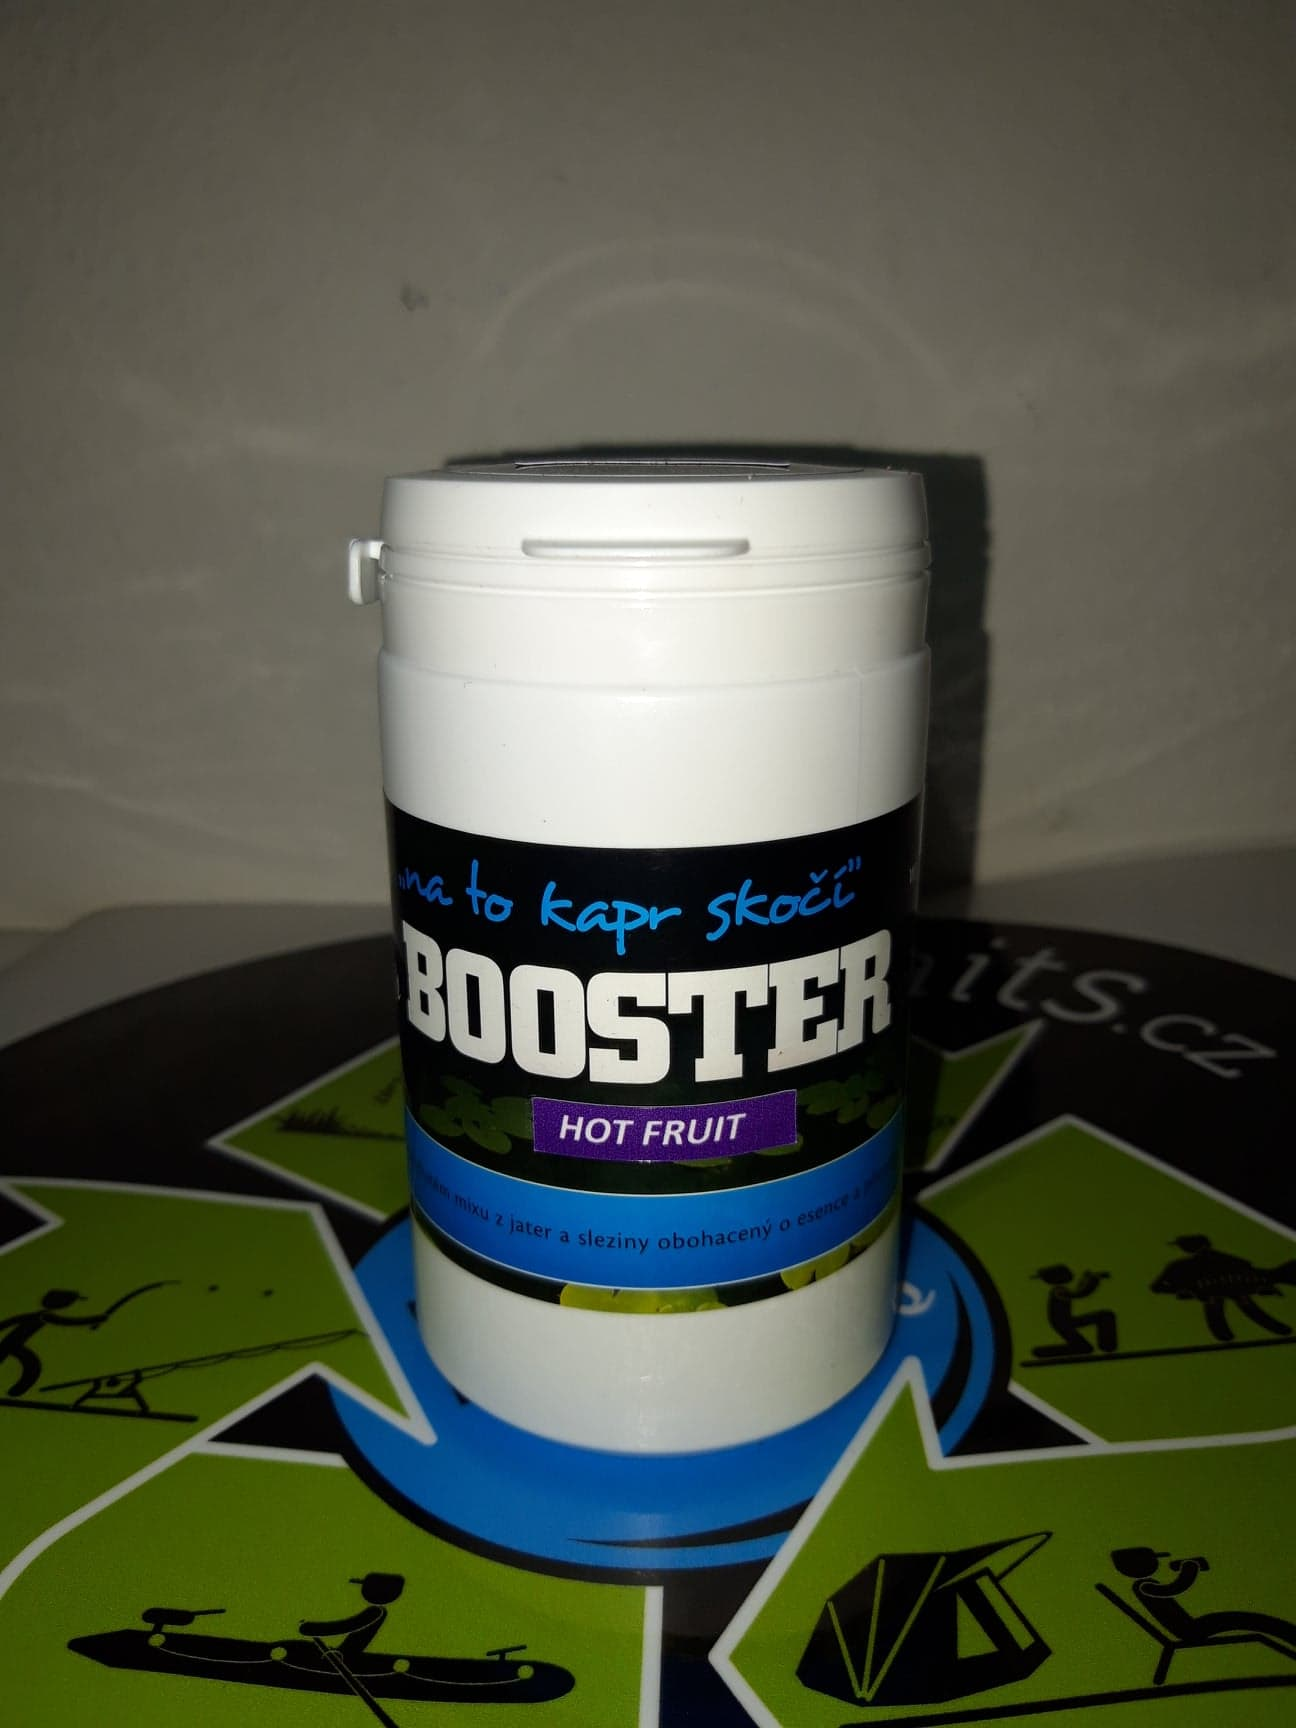 BOOSTER HOT FRUIT